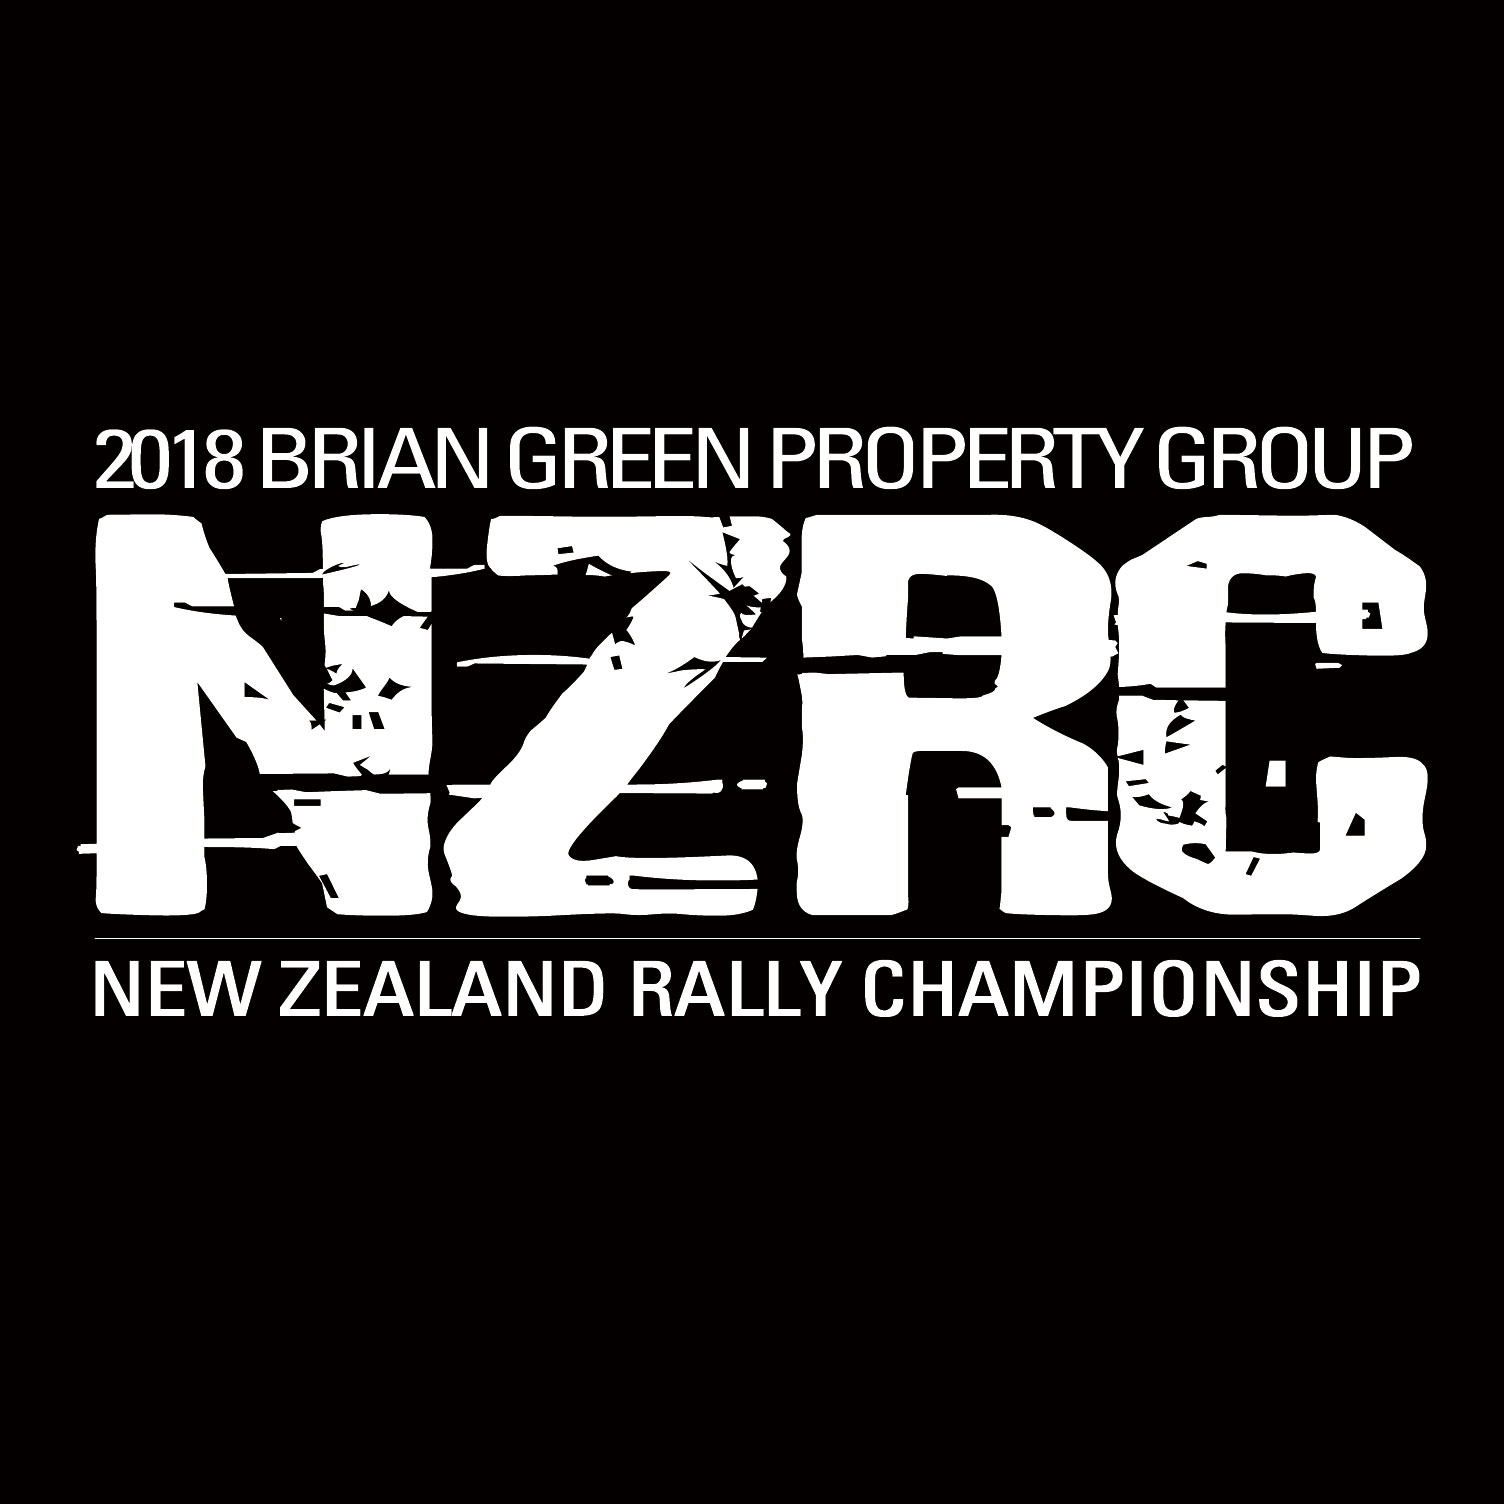 Otago Rally recognised as most popular event | :: Brian Green Property Group New Zealand Rally Championship ::